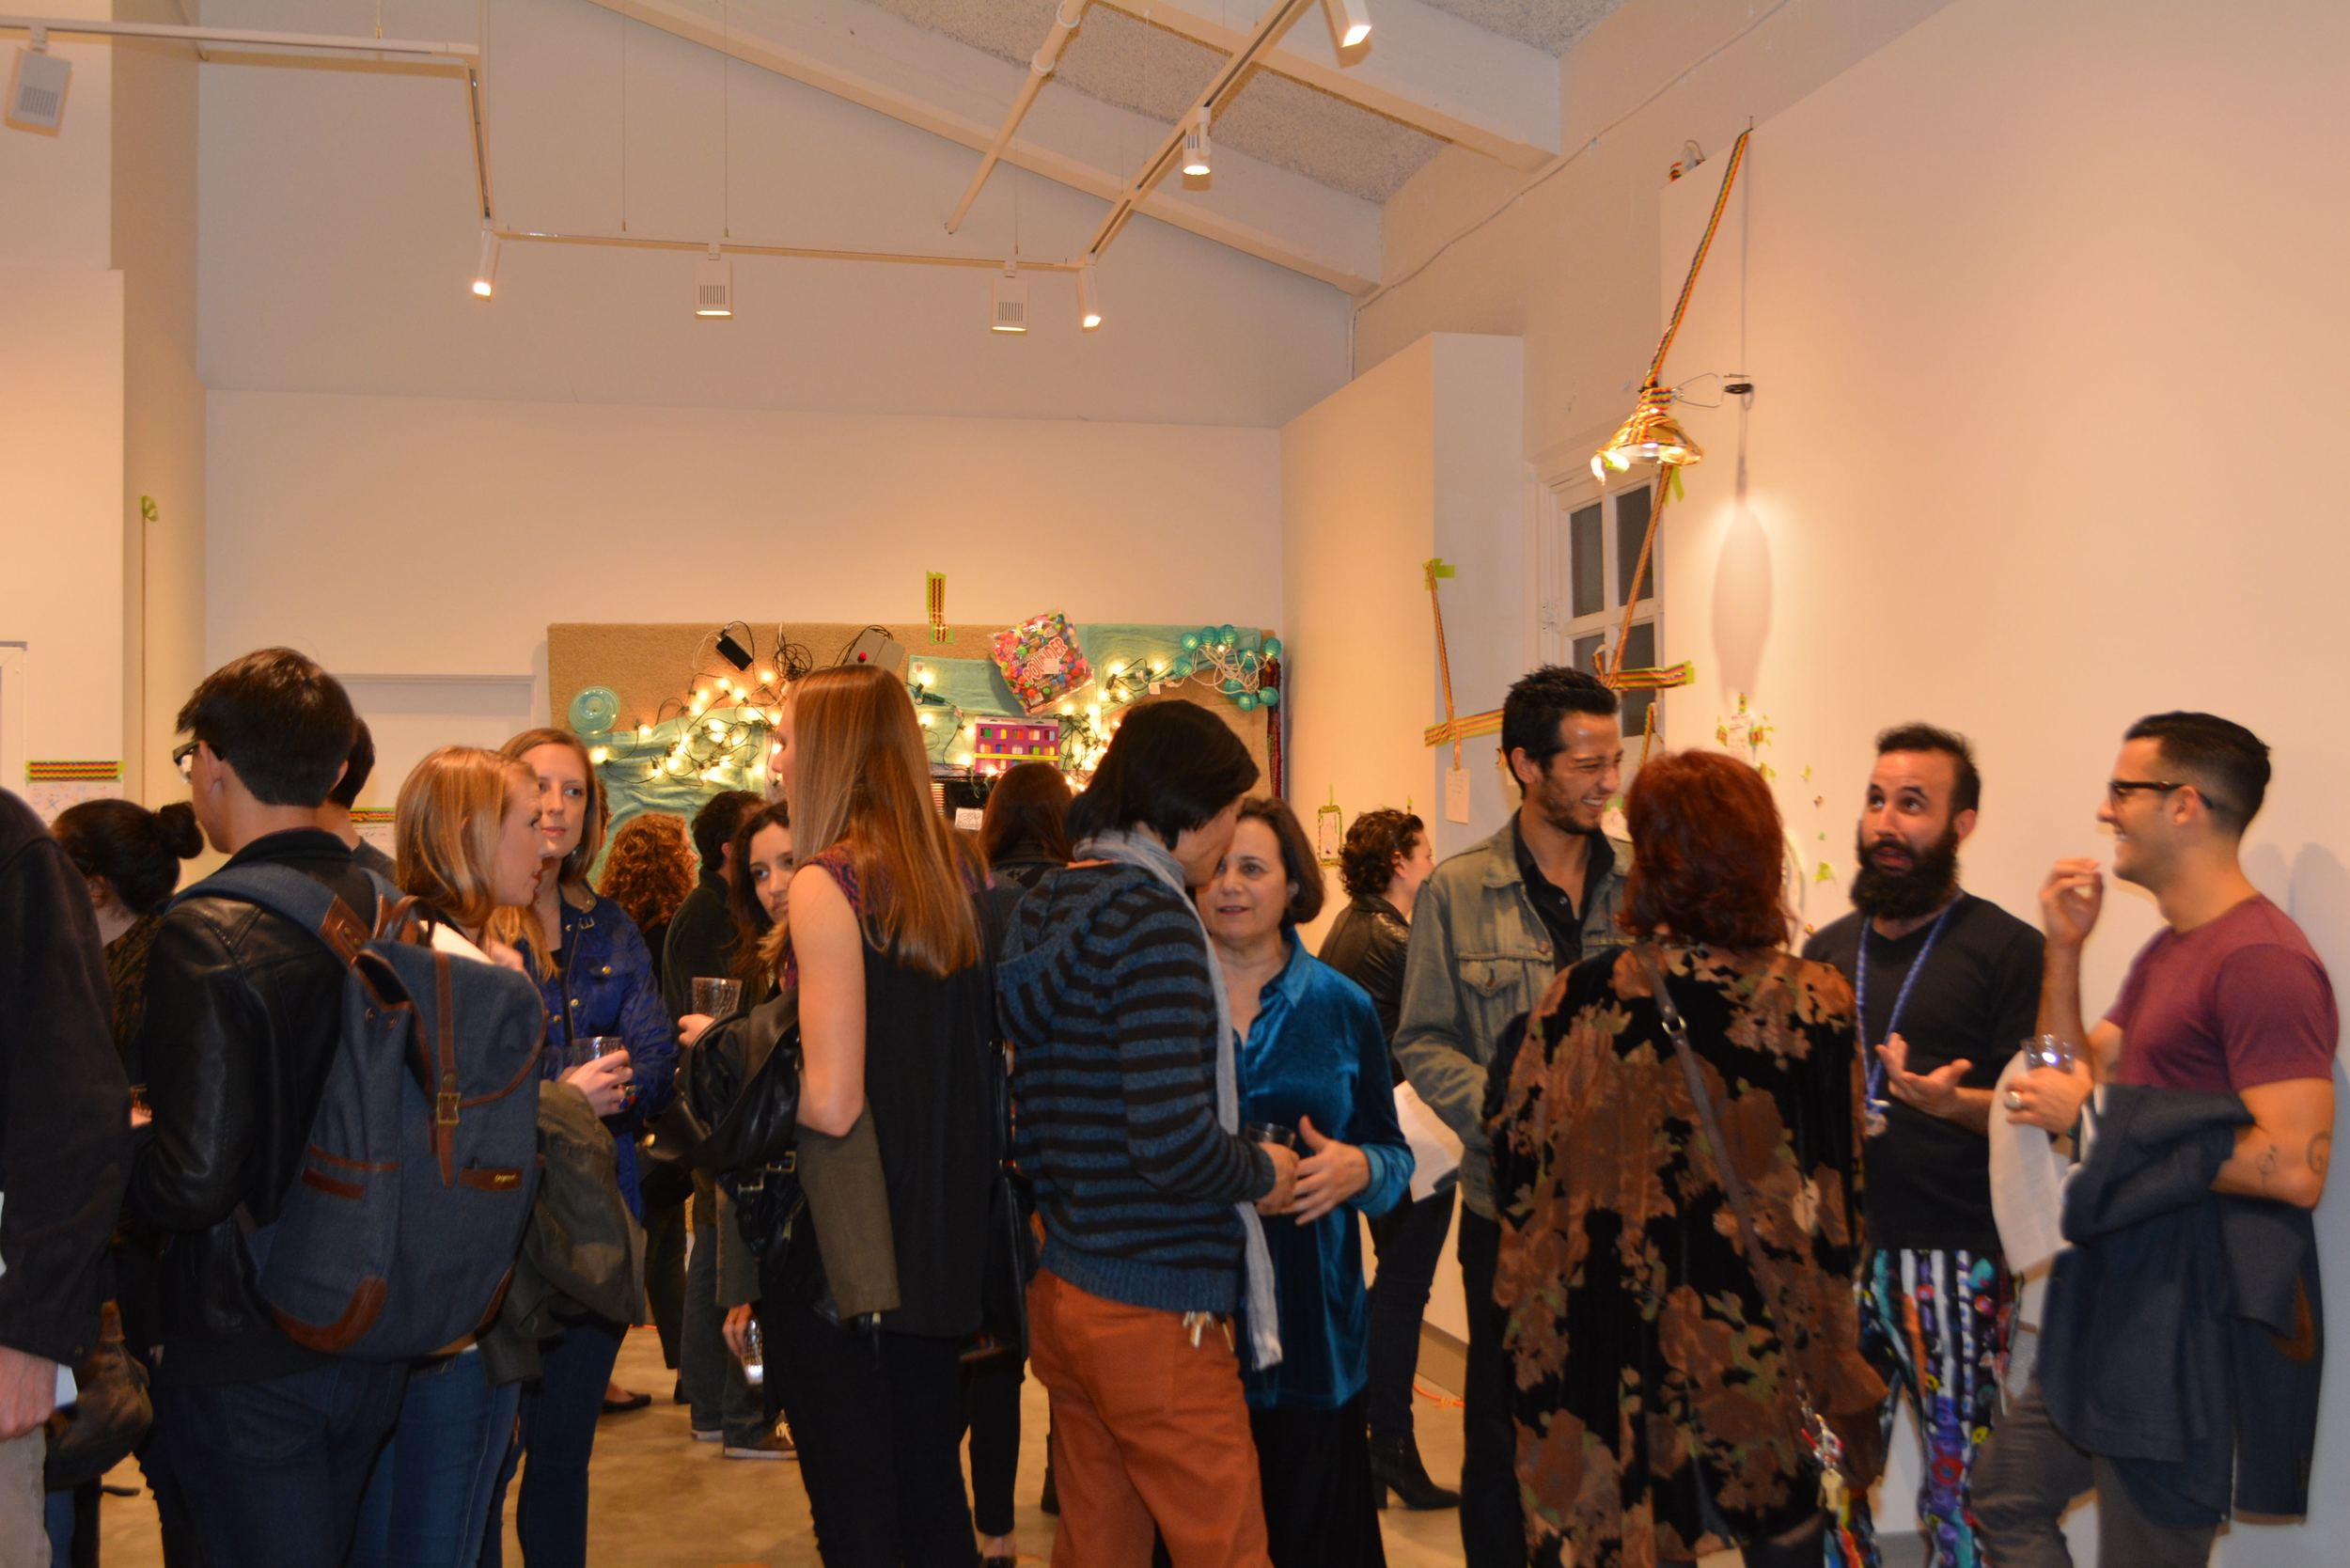 A great turnout for our inaugural exhibition.